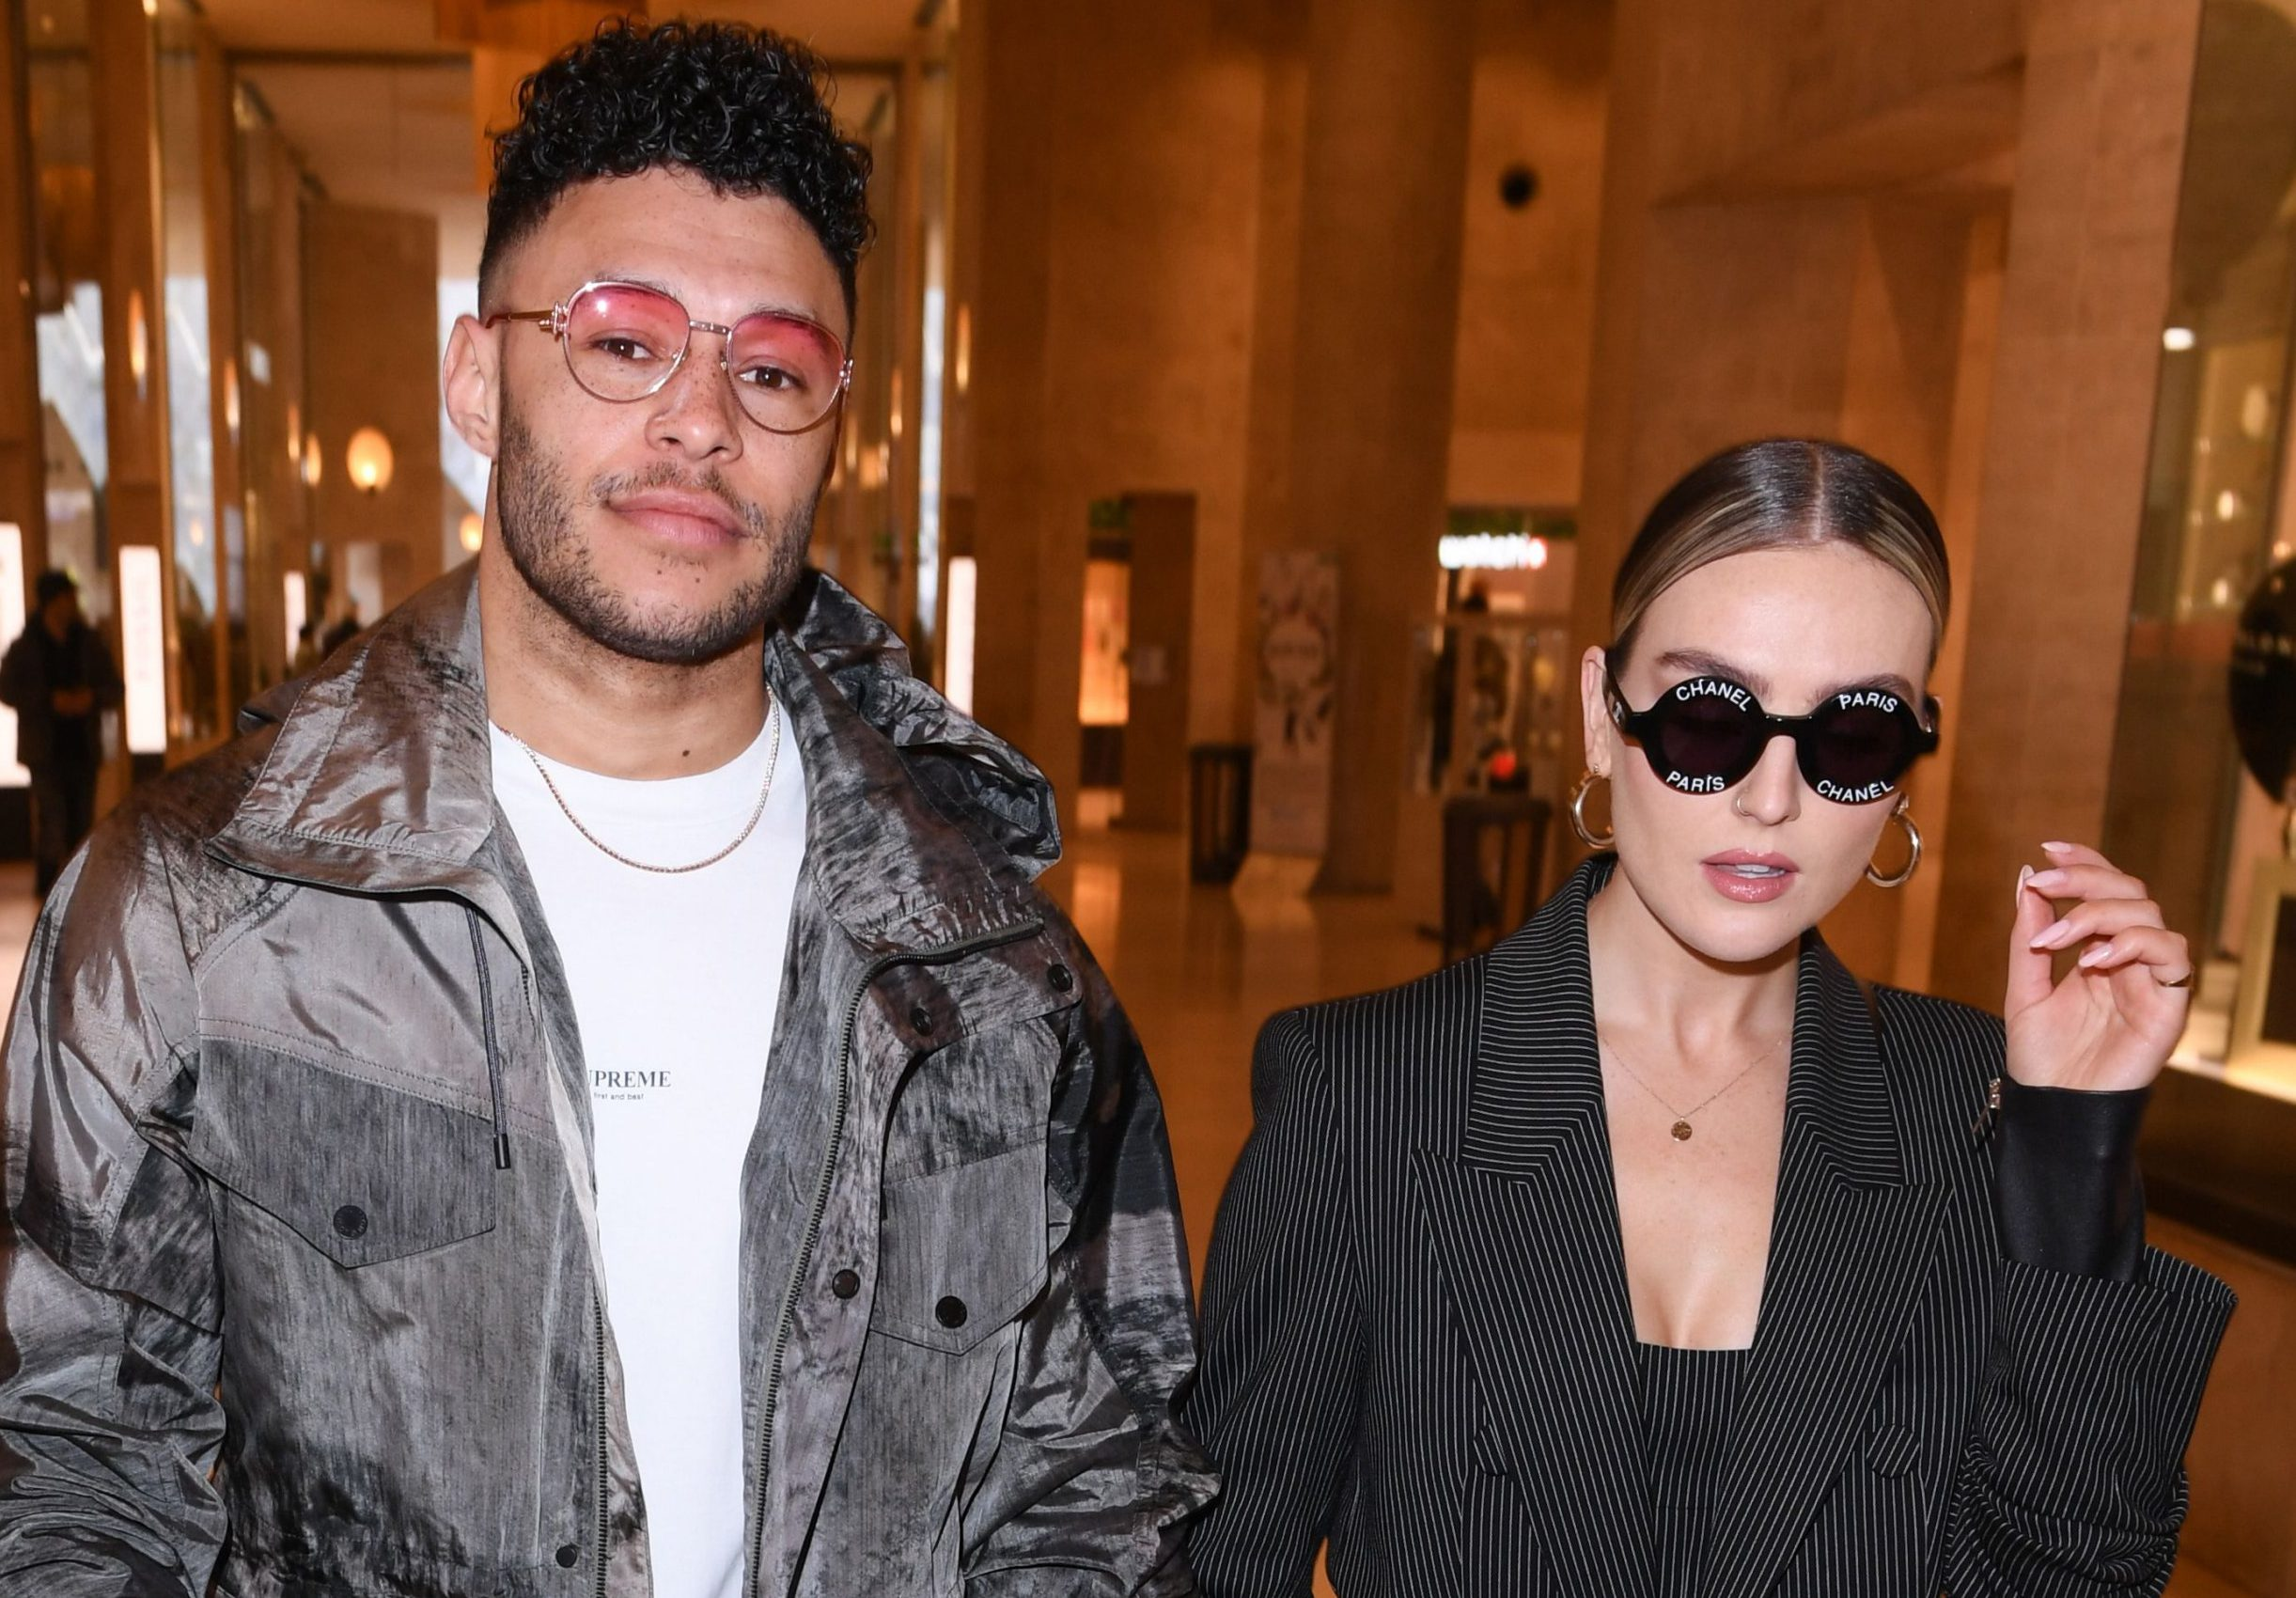 Perrie Edwards and Alex Oxlade-Chamberlain make play to be new Posh and Becks at Paris Fashion Week